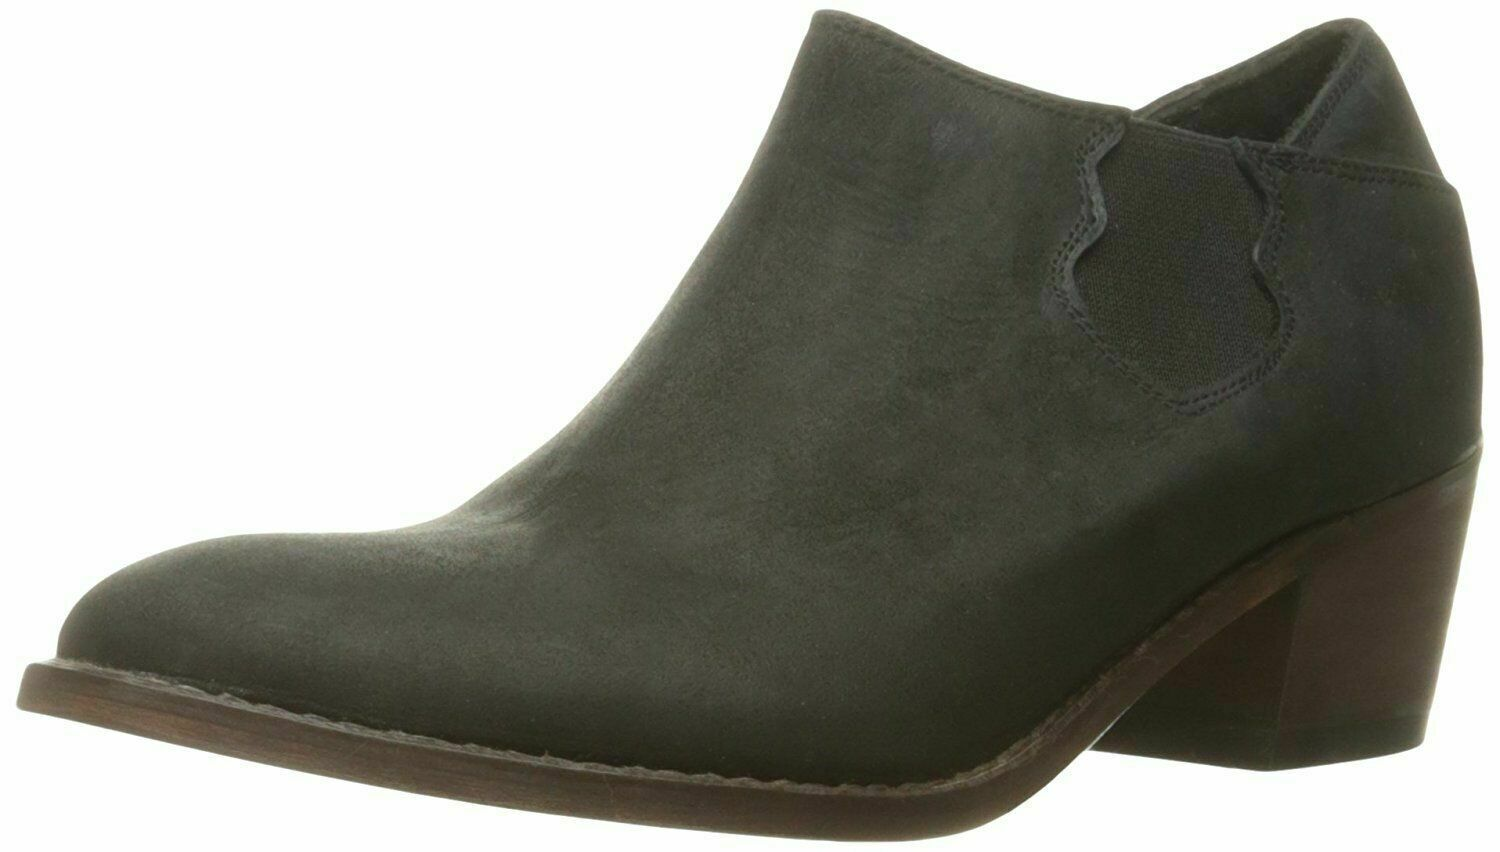 NEW 1883 by Wolverine Womens Alice Black Leather Slip-On Ankle Booties Boots NIB